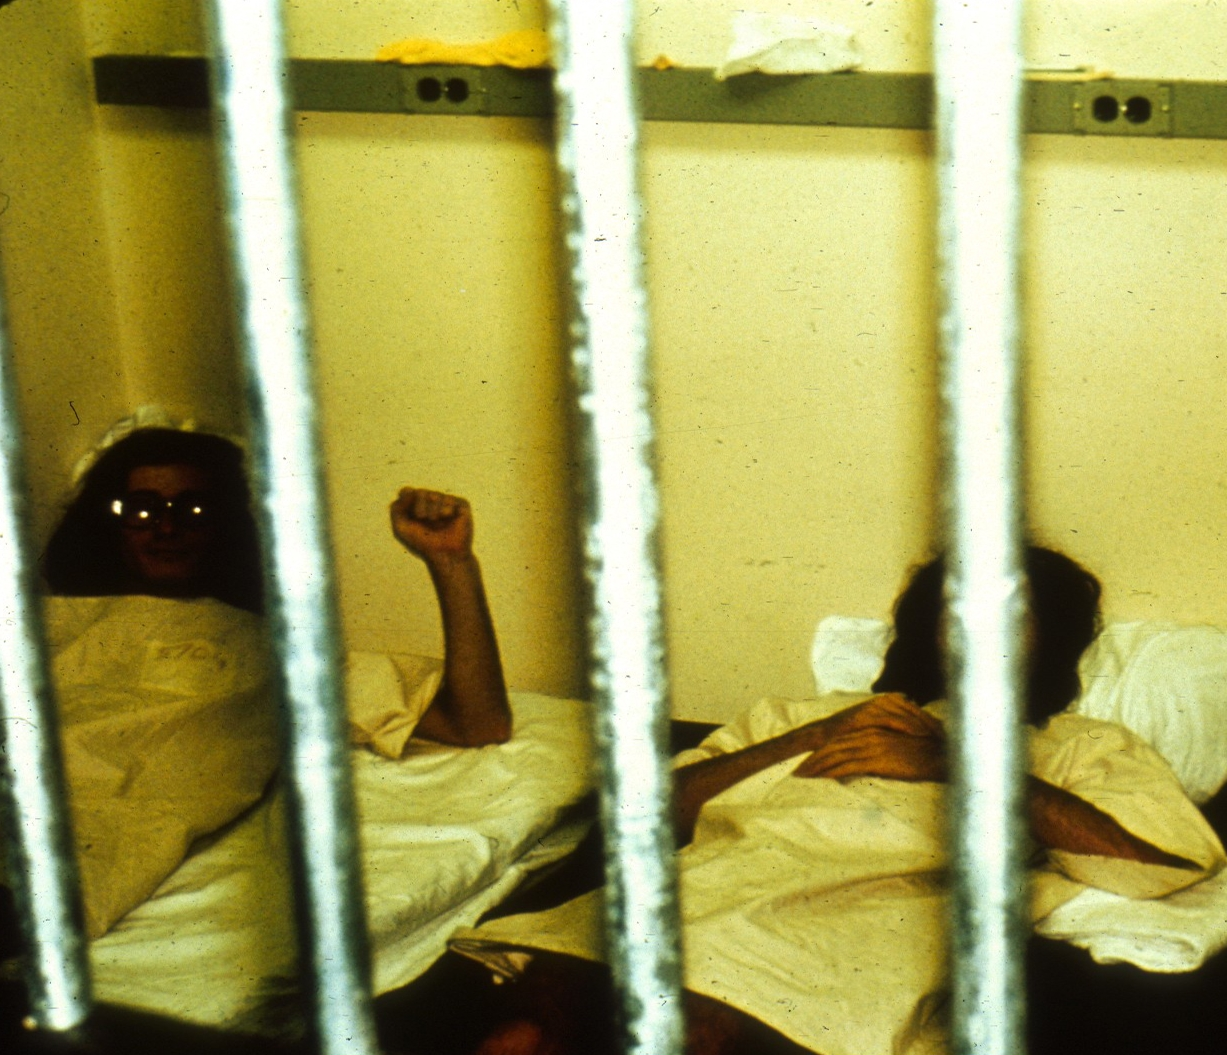 Prisoners in Bed